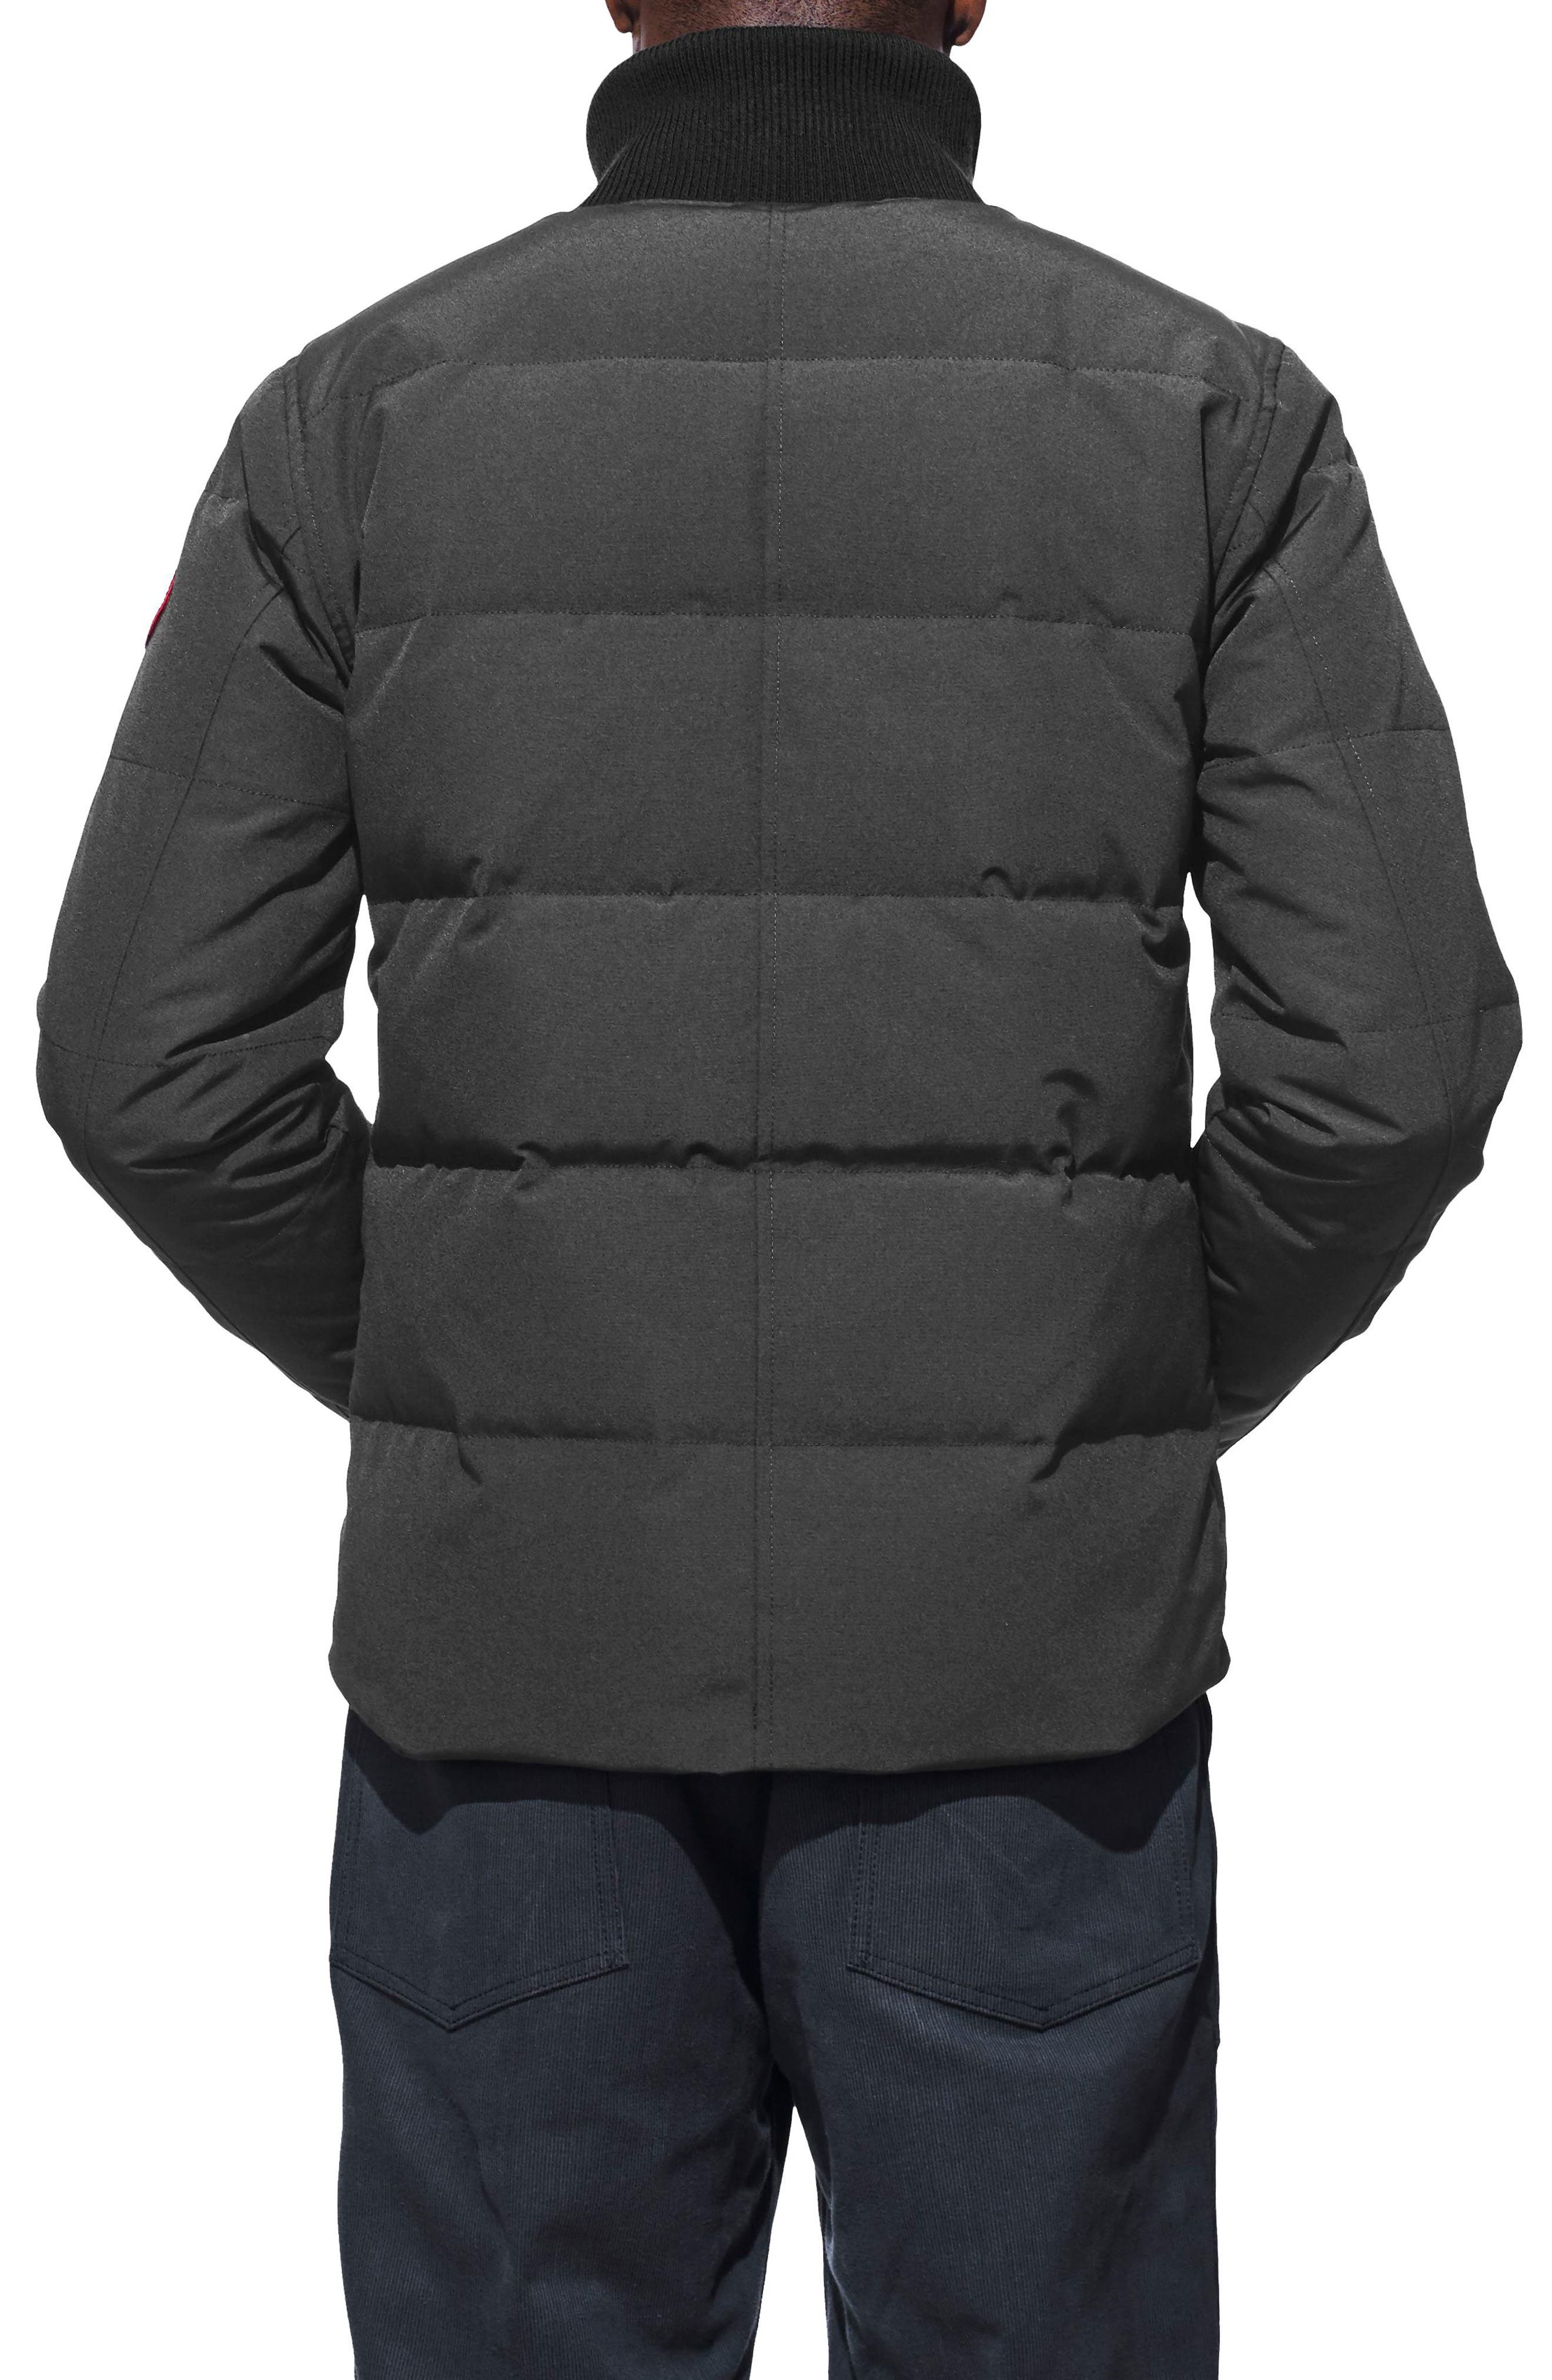 CANADA GOOSE, 'Woolford' Slim Fit Down Bomber Jacket, Alternate thumbnail 2, color, GRAPHITE